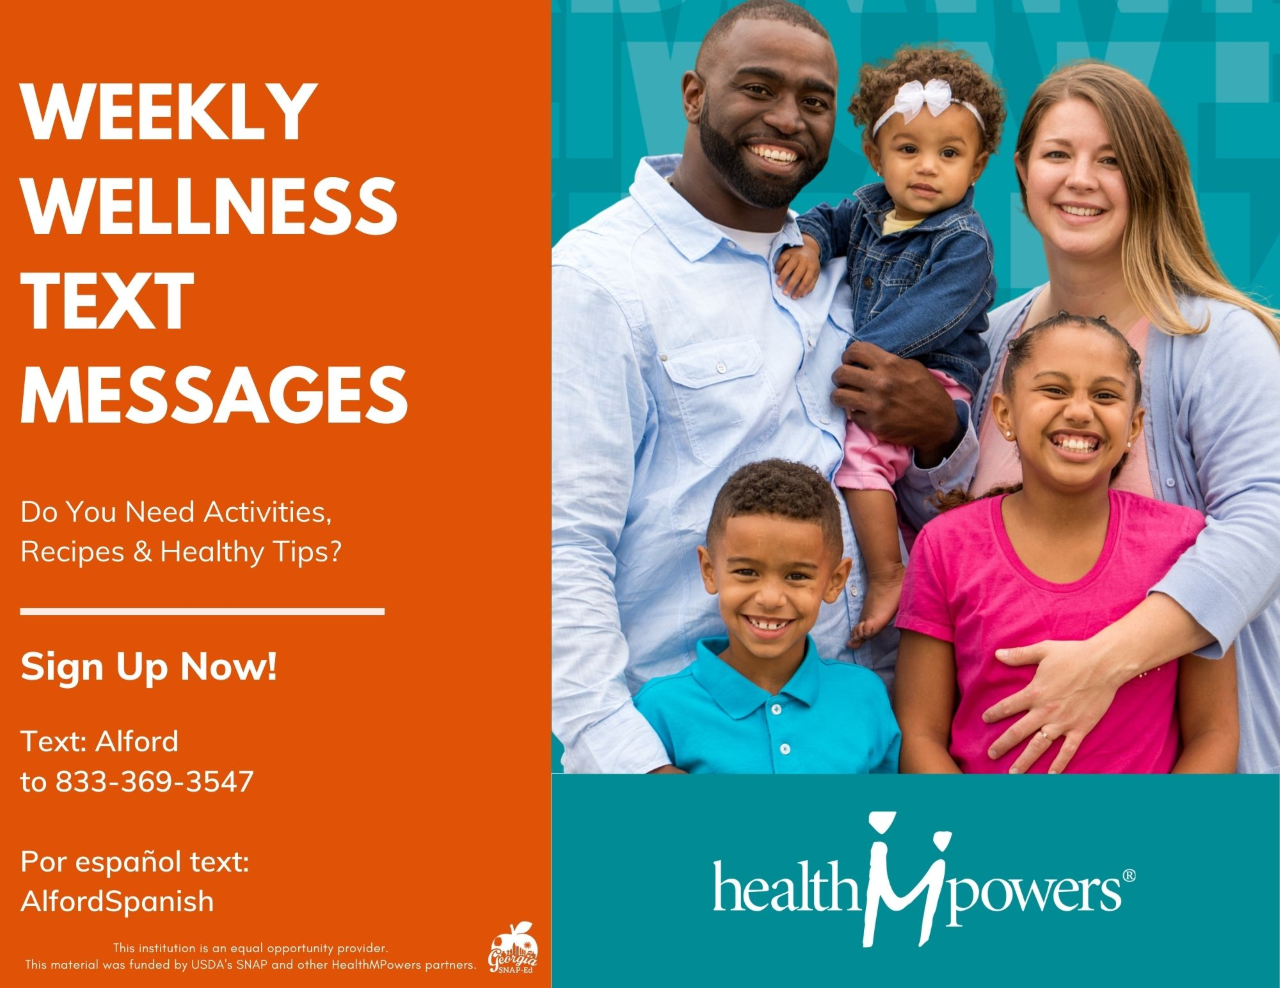 Click for more information on weekly wellness text messages